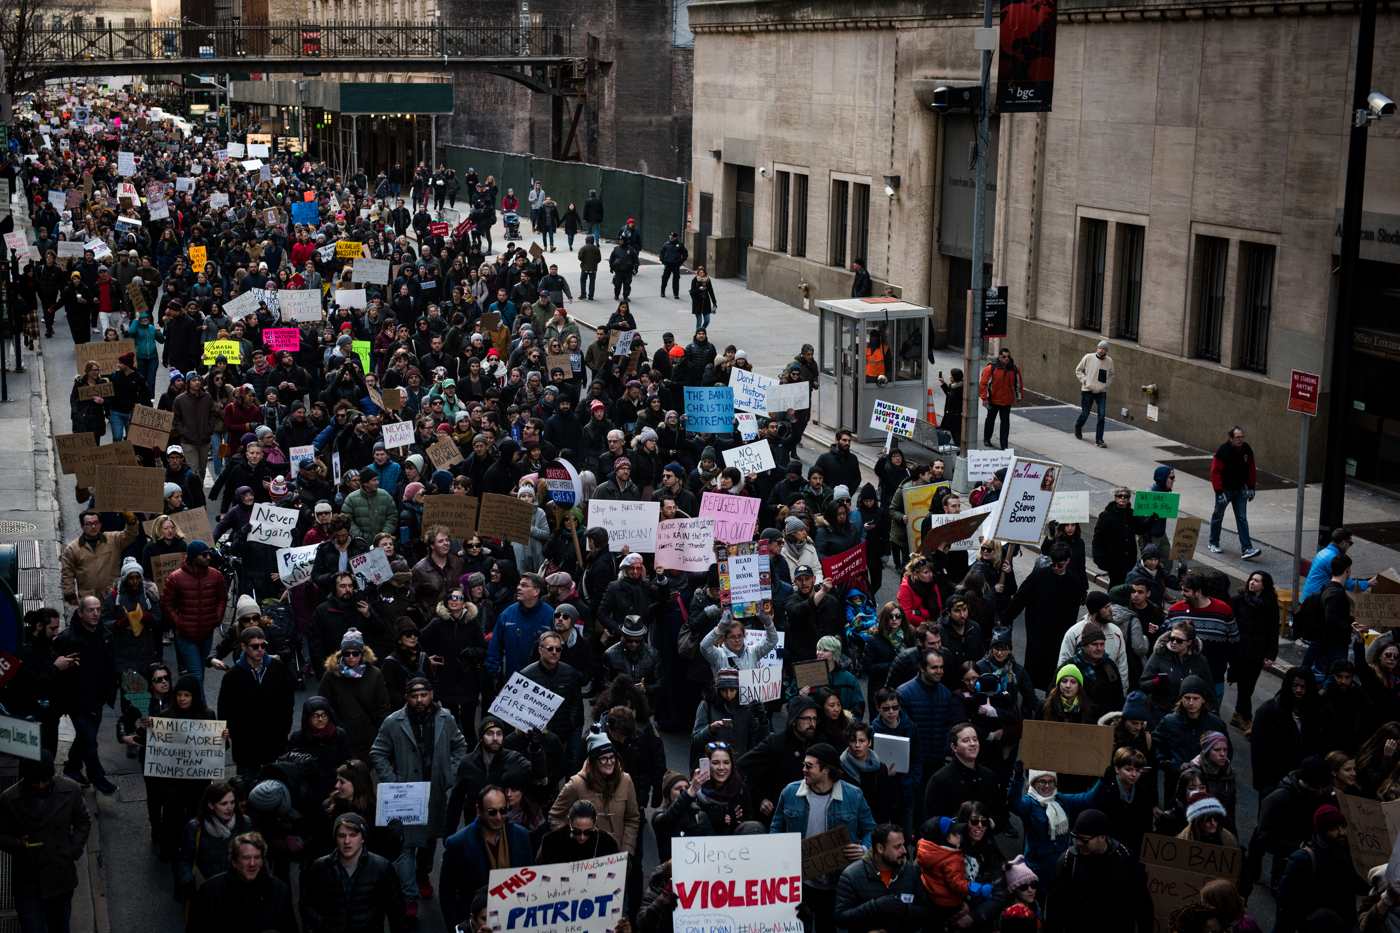 Protestors march from Battery Park to Federal Plaza in the Manhattan borough of New York, NY on Saturday, January 29, 2017. Credit: Mark Kauzlarich for CNN